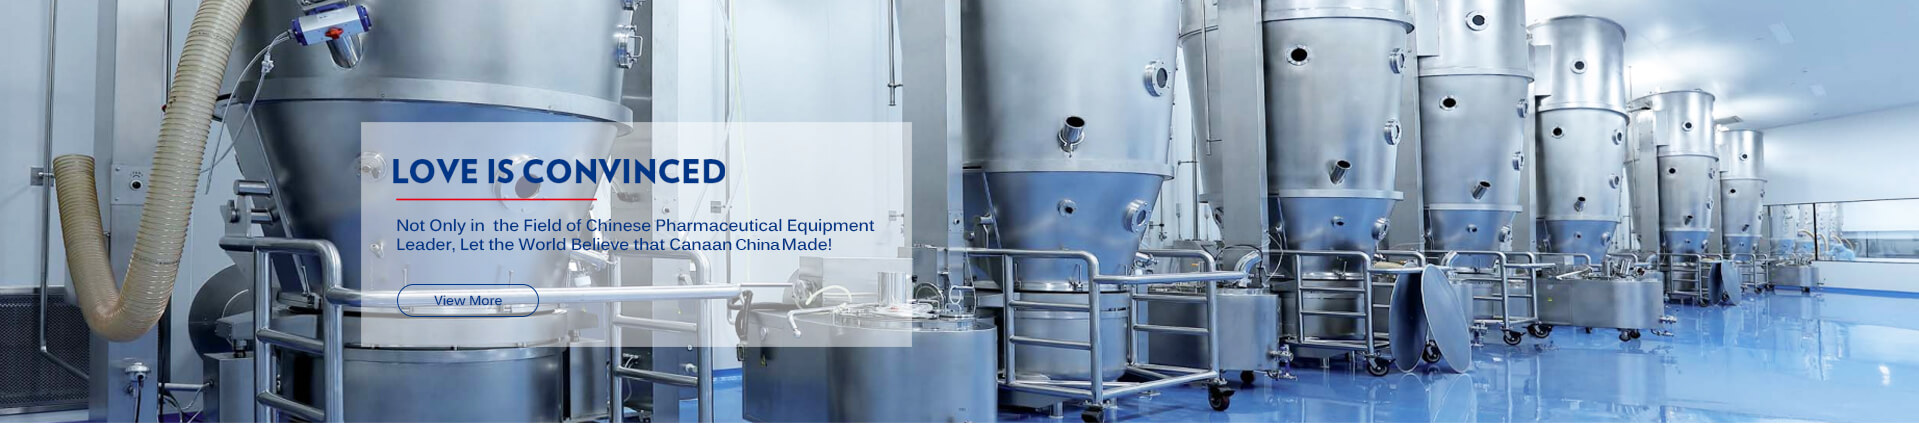 Not Only in  the Field of Chinese Pharmaceutical Equipment Leader, Let the World Believe that Canaan Chile Made!